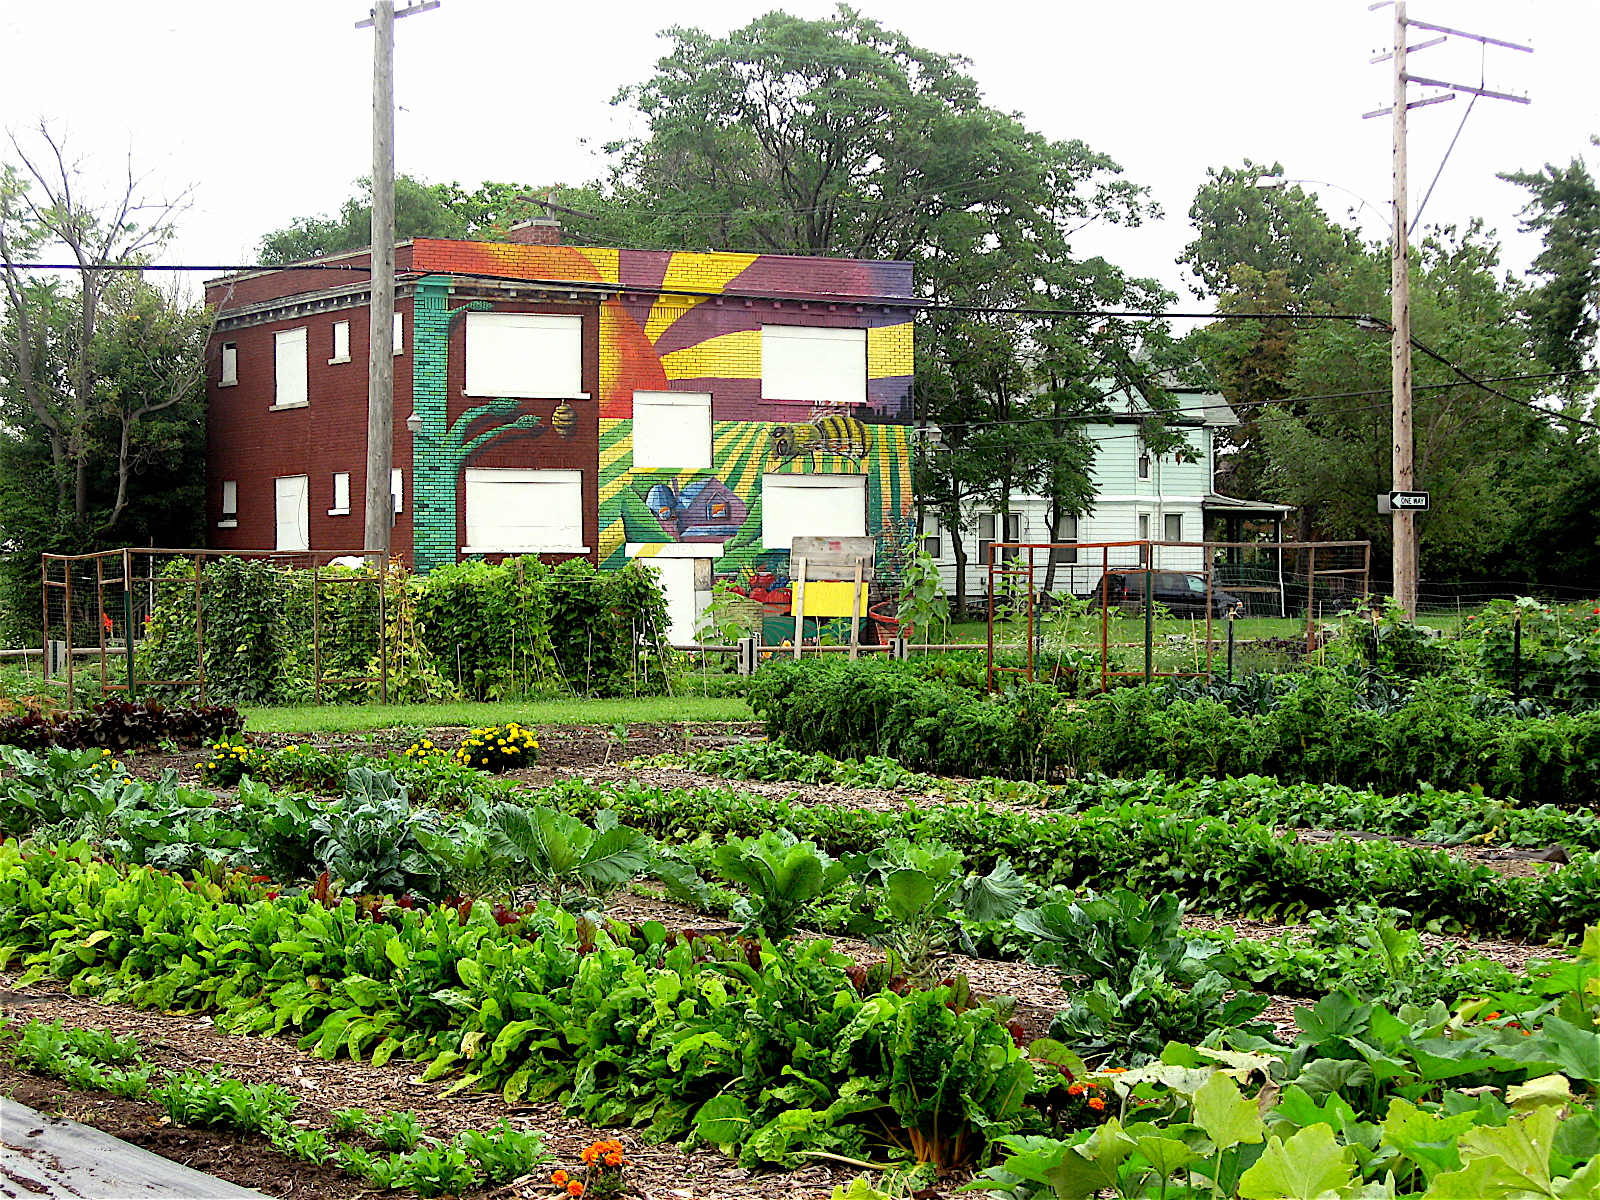 10 detroit urban farms rooting goodness into the city. Black Bedroom Furniture Sets. Home Design Ideas